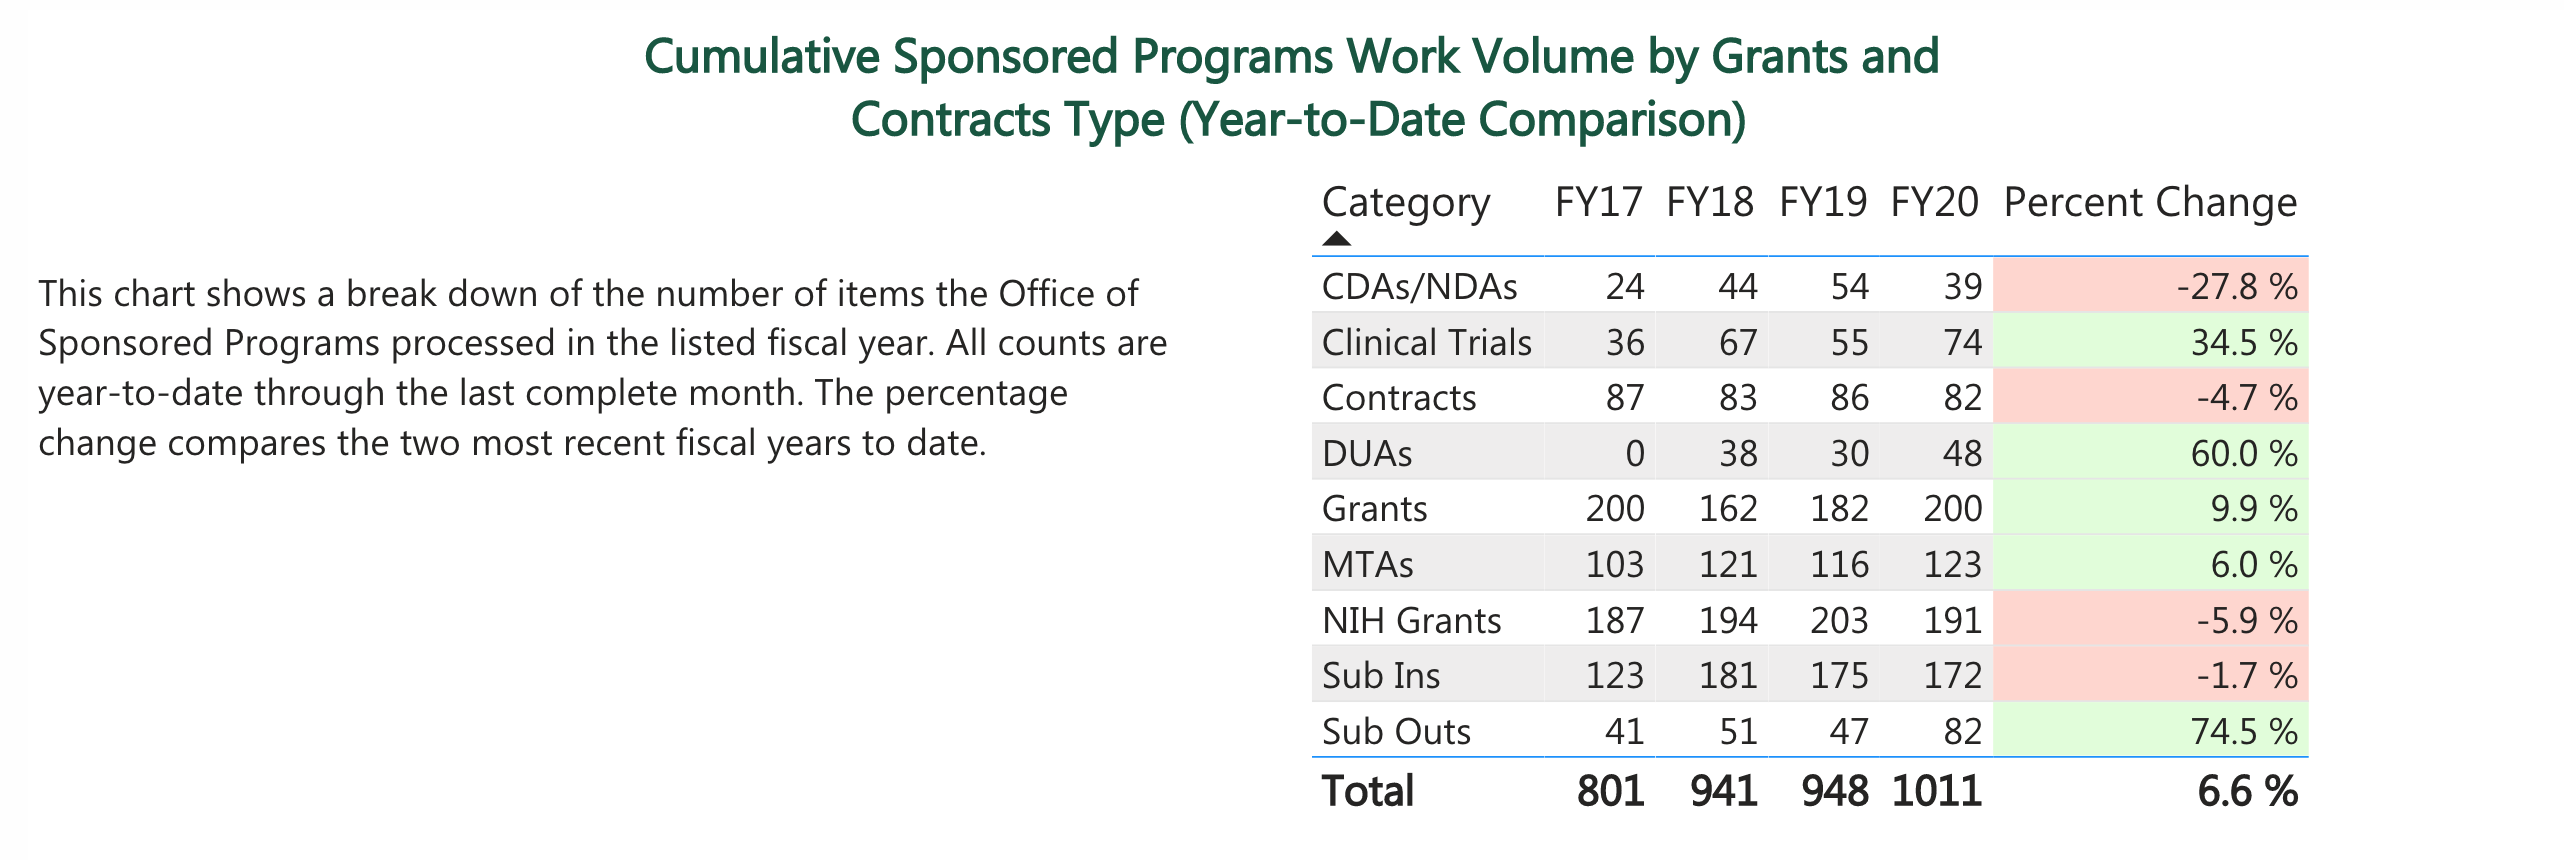 Cumulative Sponsored Programs Work Volume by Grants and Contracts Type